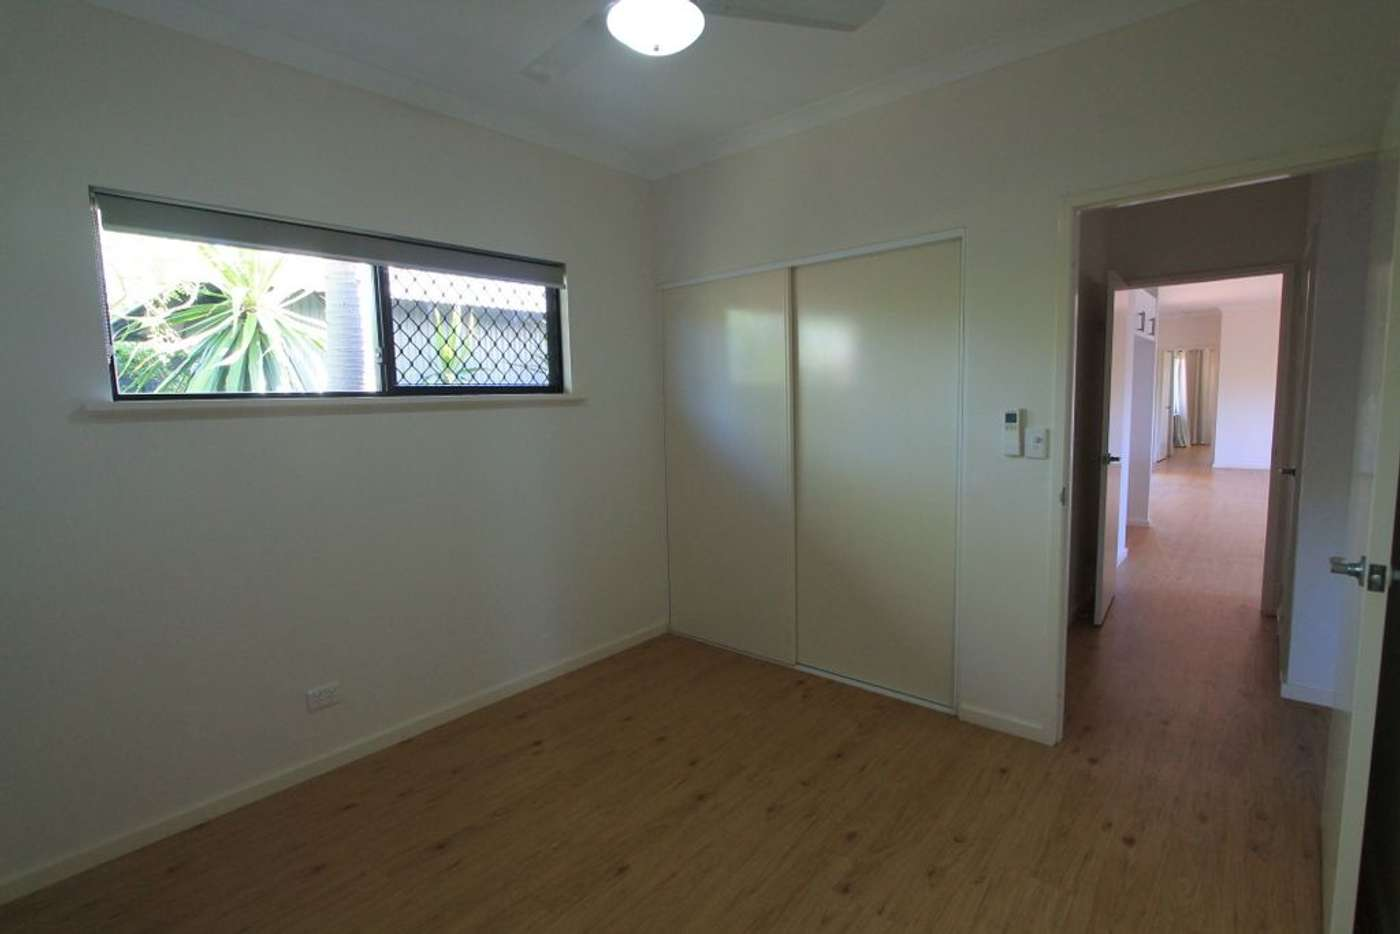 Sixth view of Homely house listing, 9 Durack Crescent, Broome WA 6725